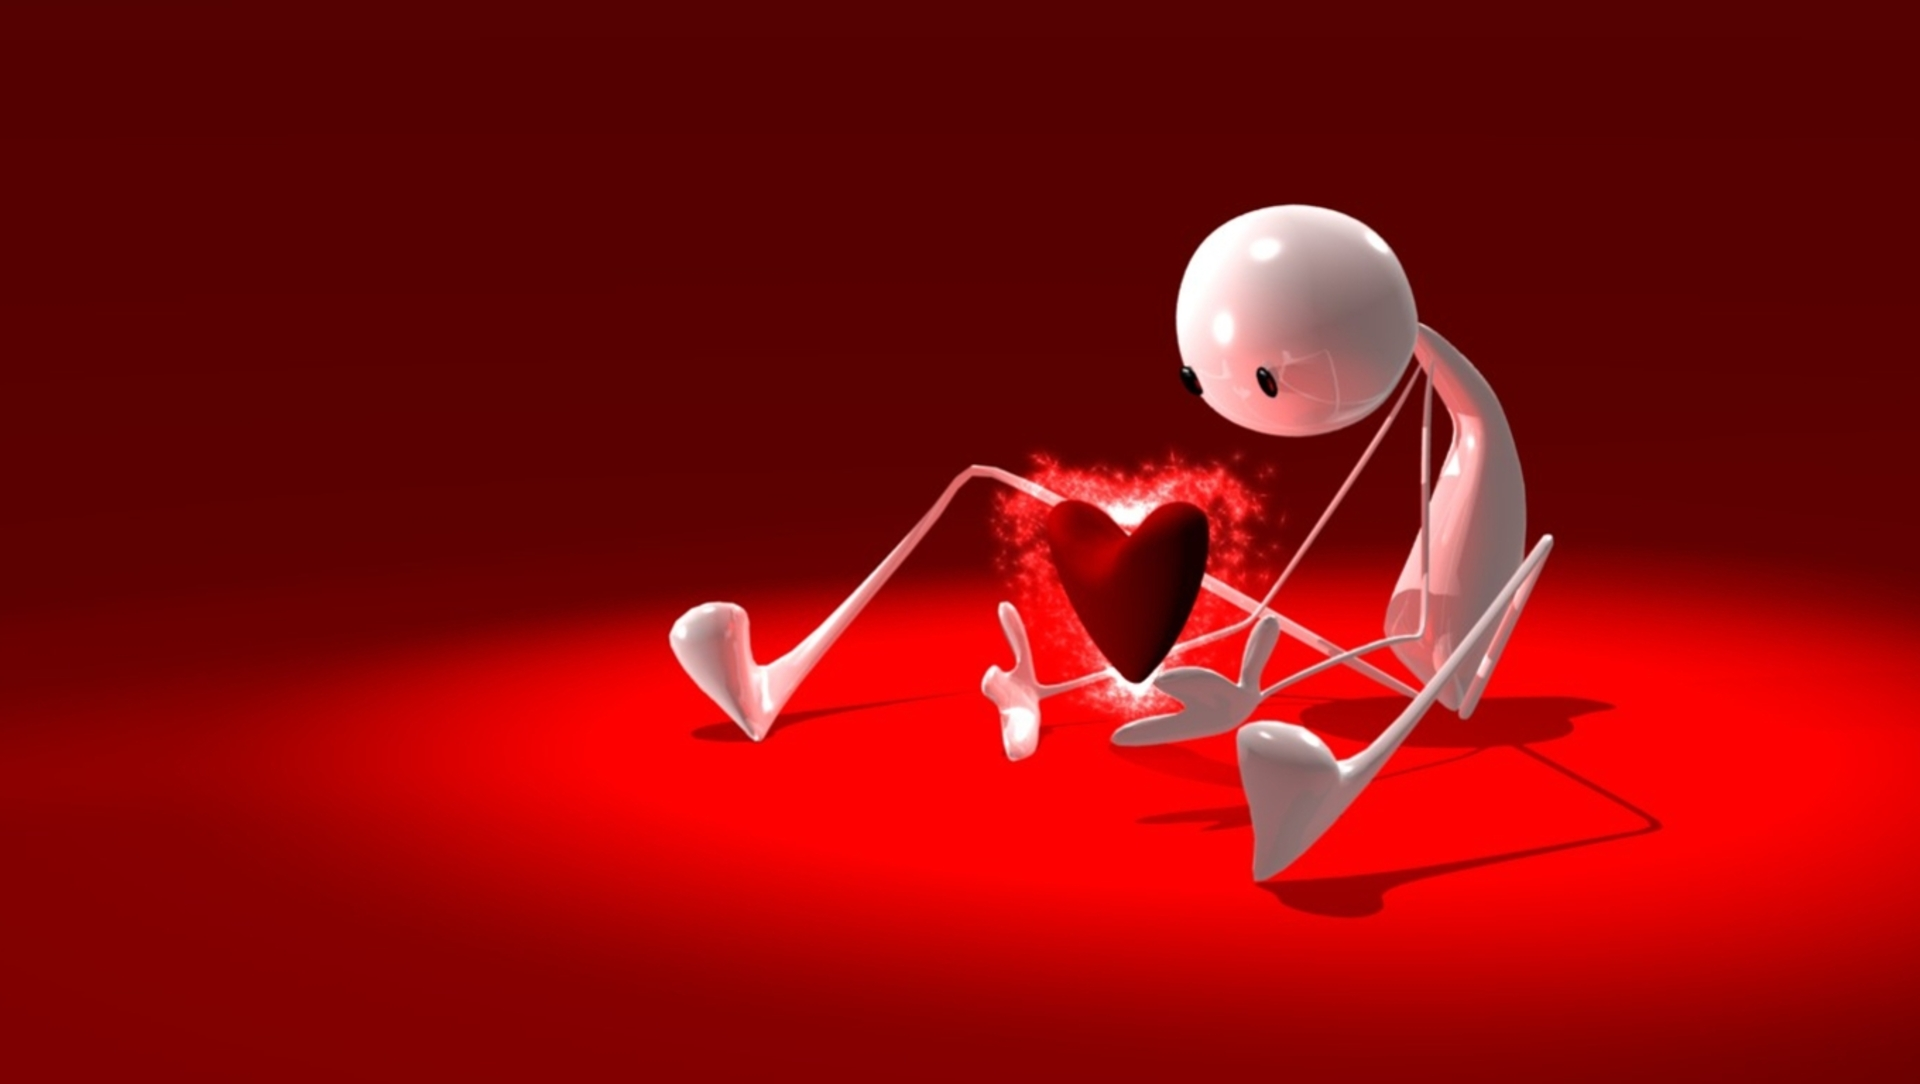 Animated Love Wallpapers 1920x1084